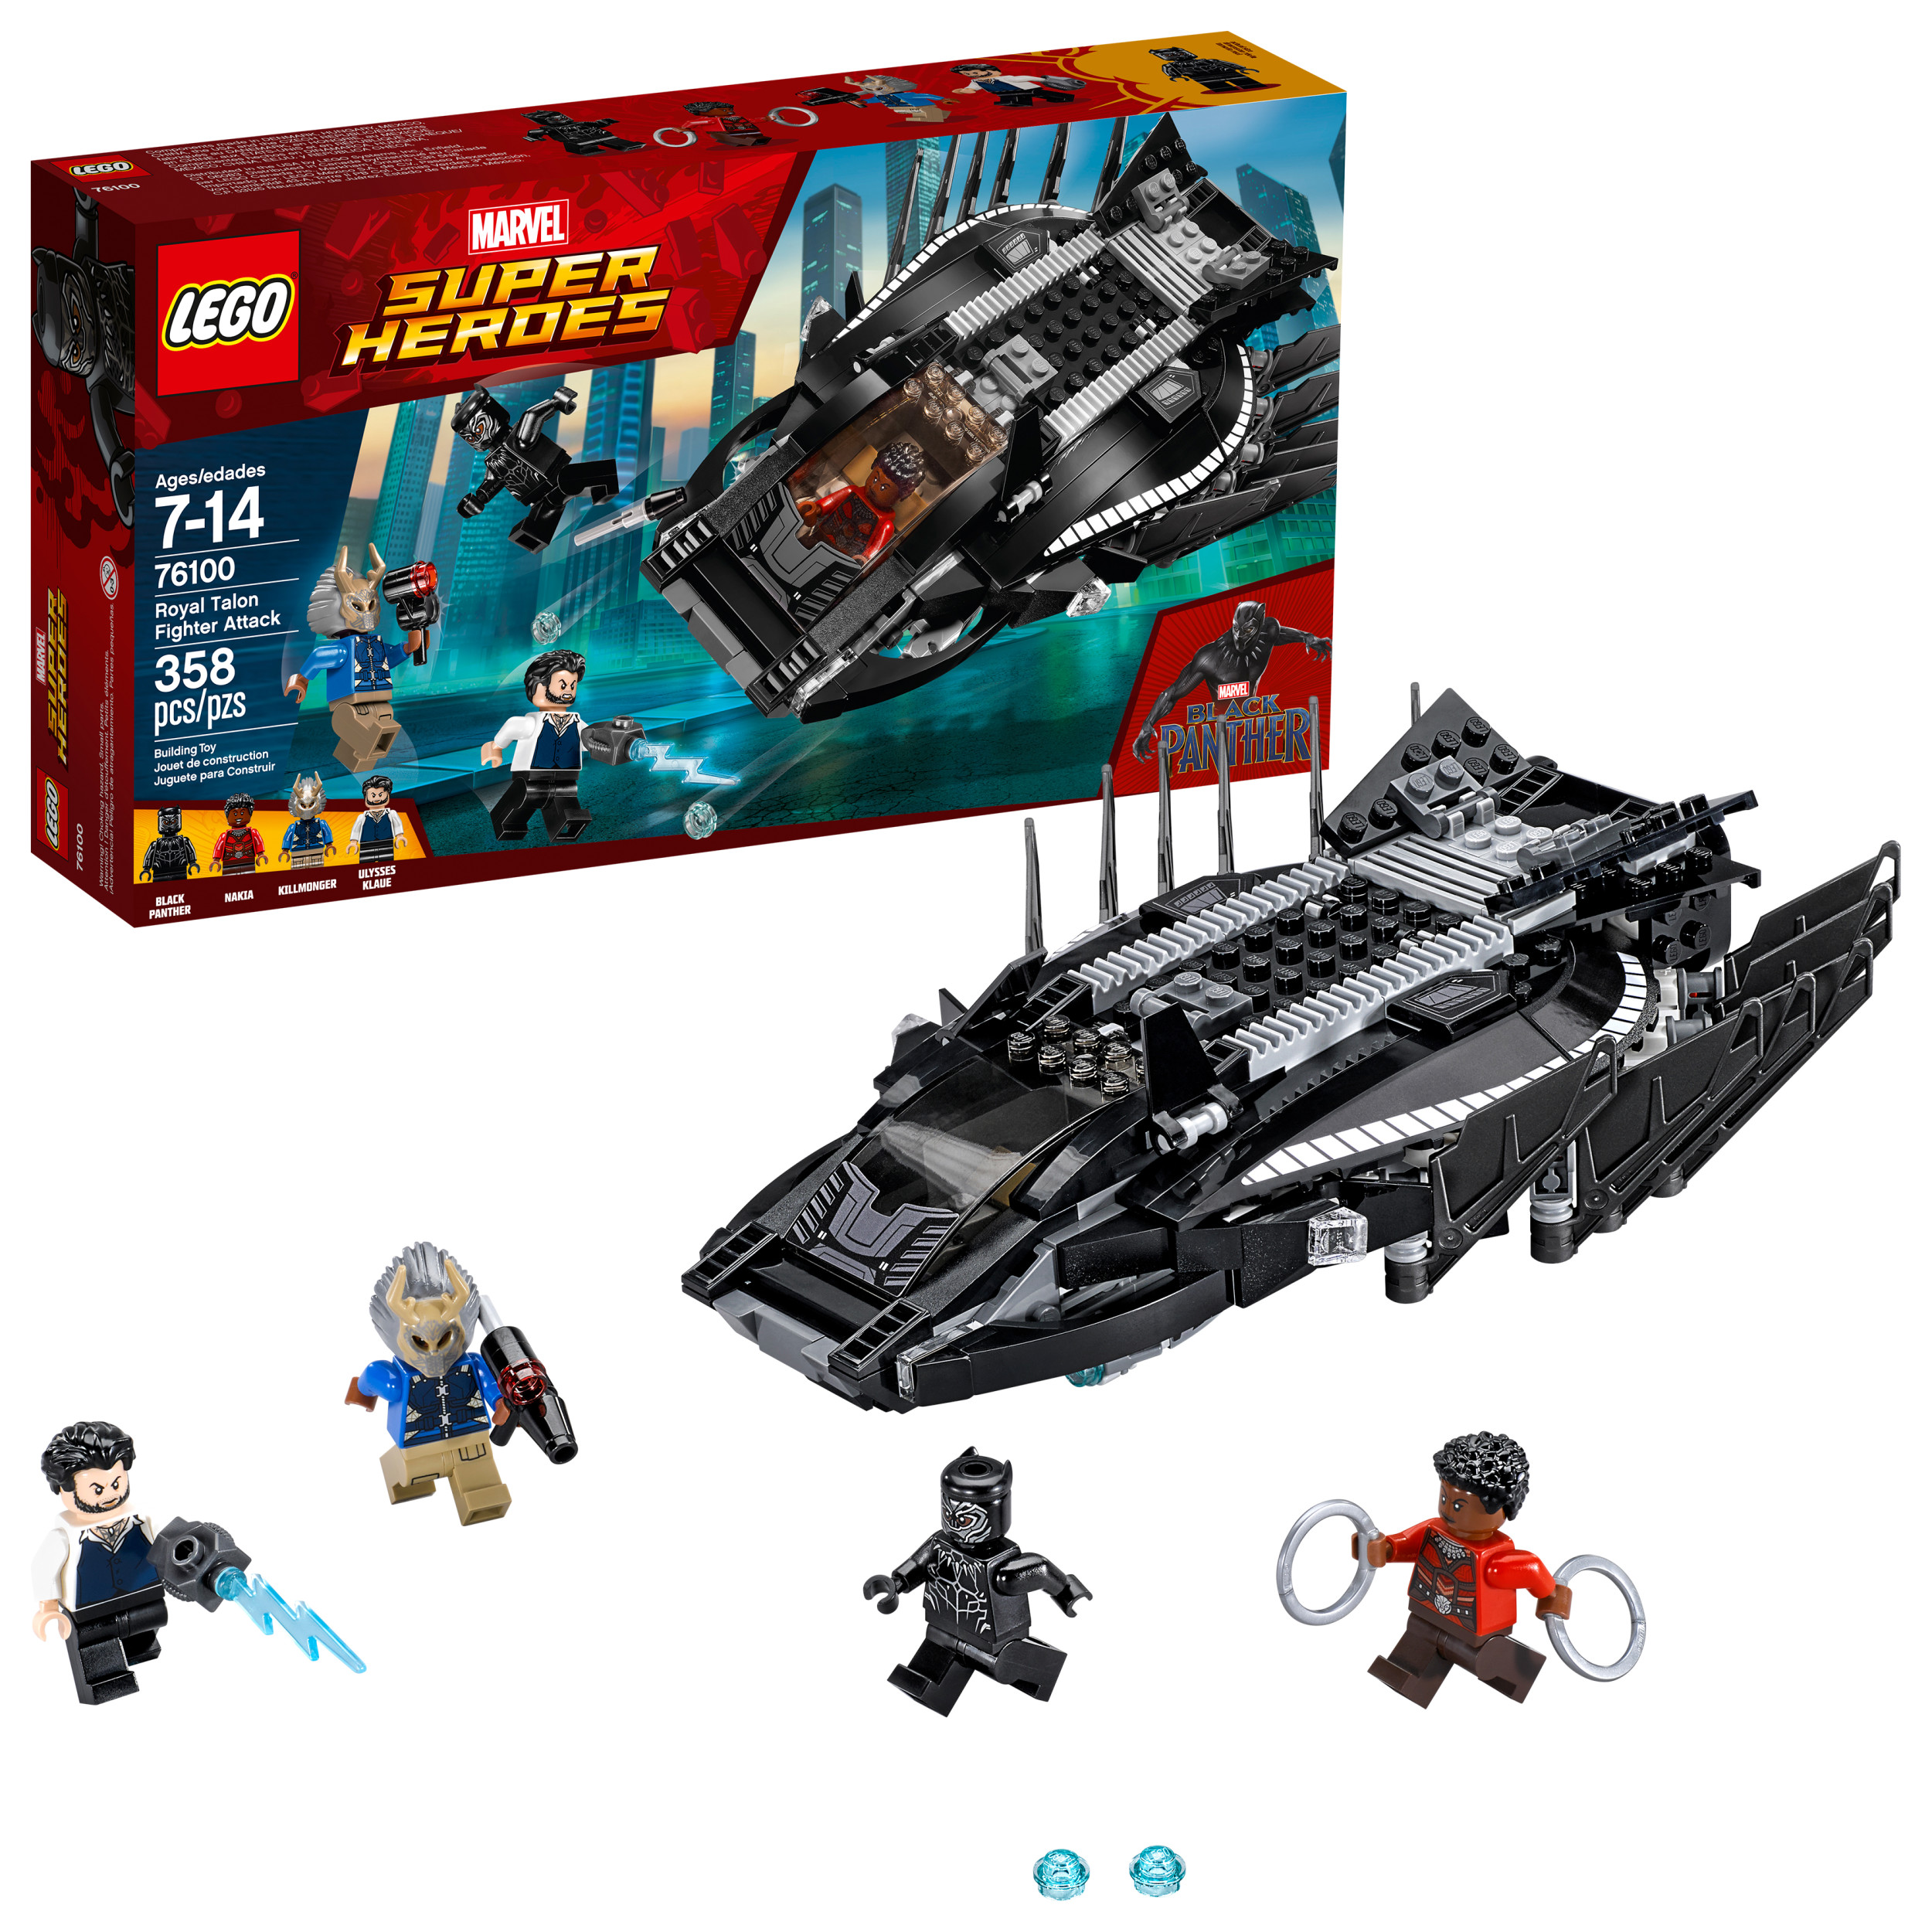 LEGO Super Heroes Black Panther Royal Talon Fighter Attack 76100